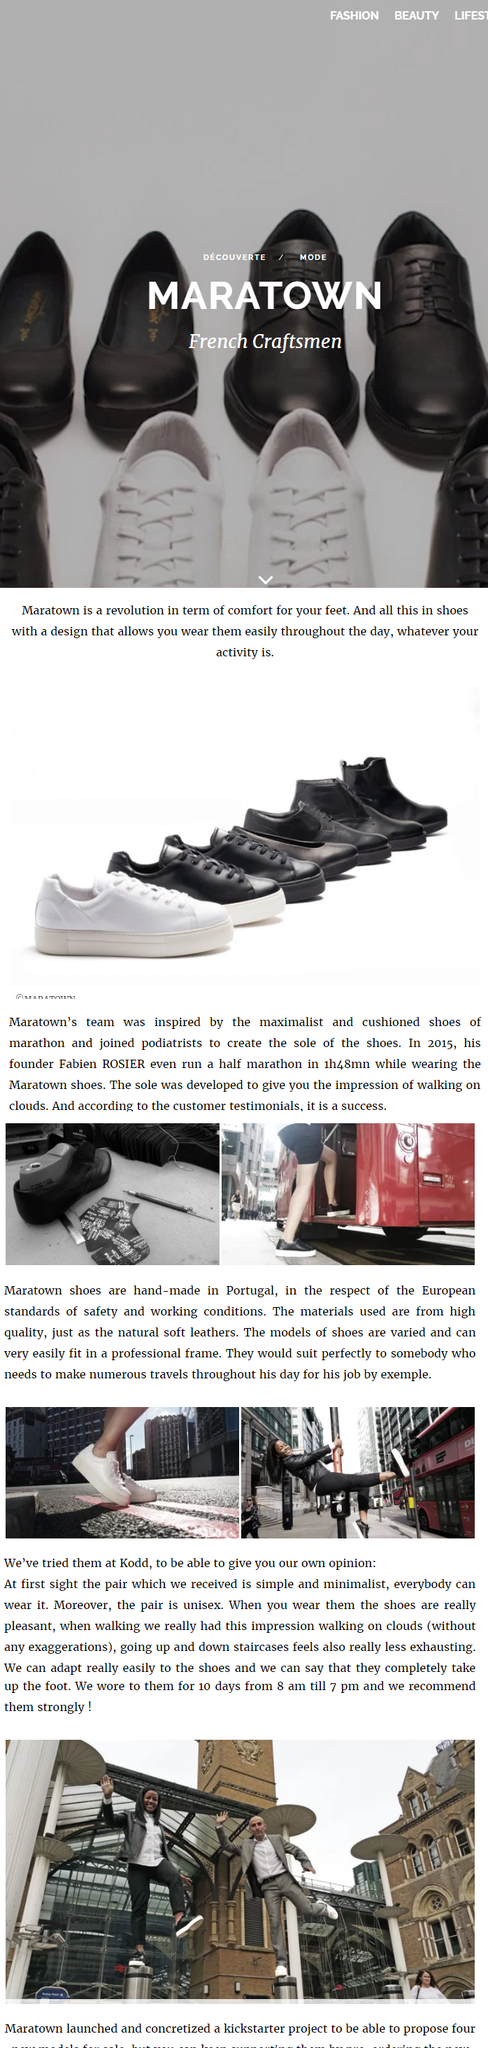 63168883f1a894 http://www.mensup.fr/mode-homme/maratown-premiers-sneakers-amortis-comme-des -running-sur-kickstarter-chaussures-137345